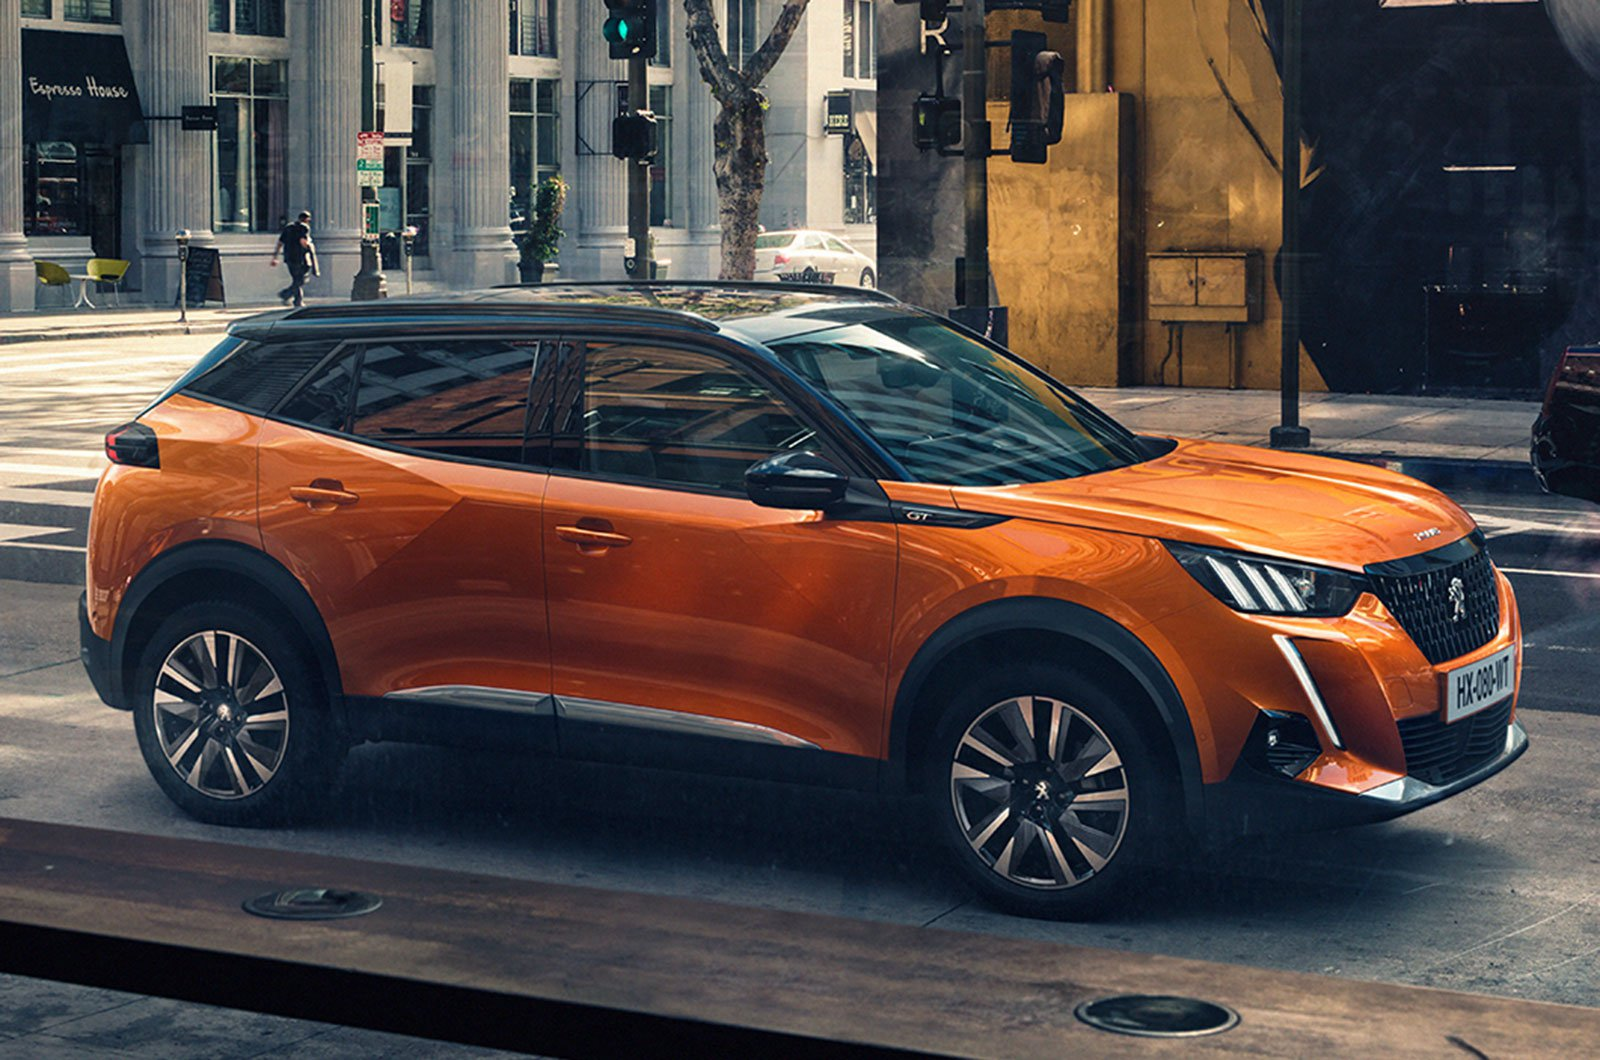 2020 peugeot 2008 suv revealed  price  specs and release date